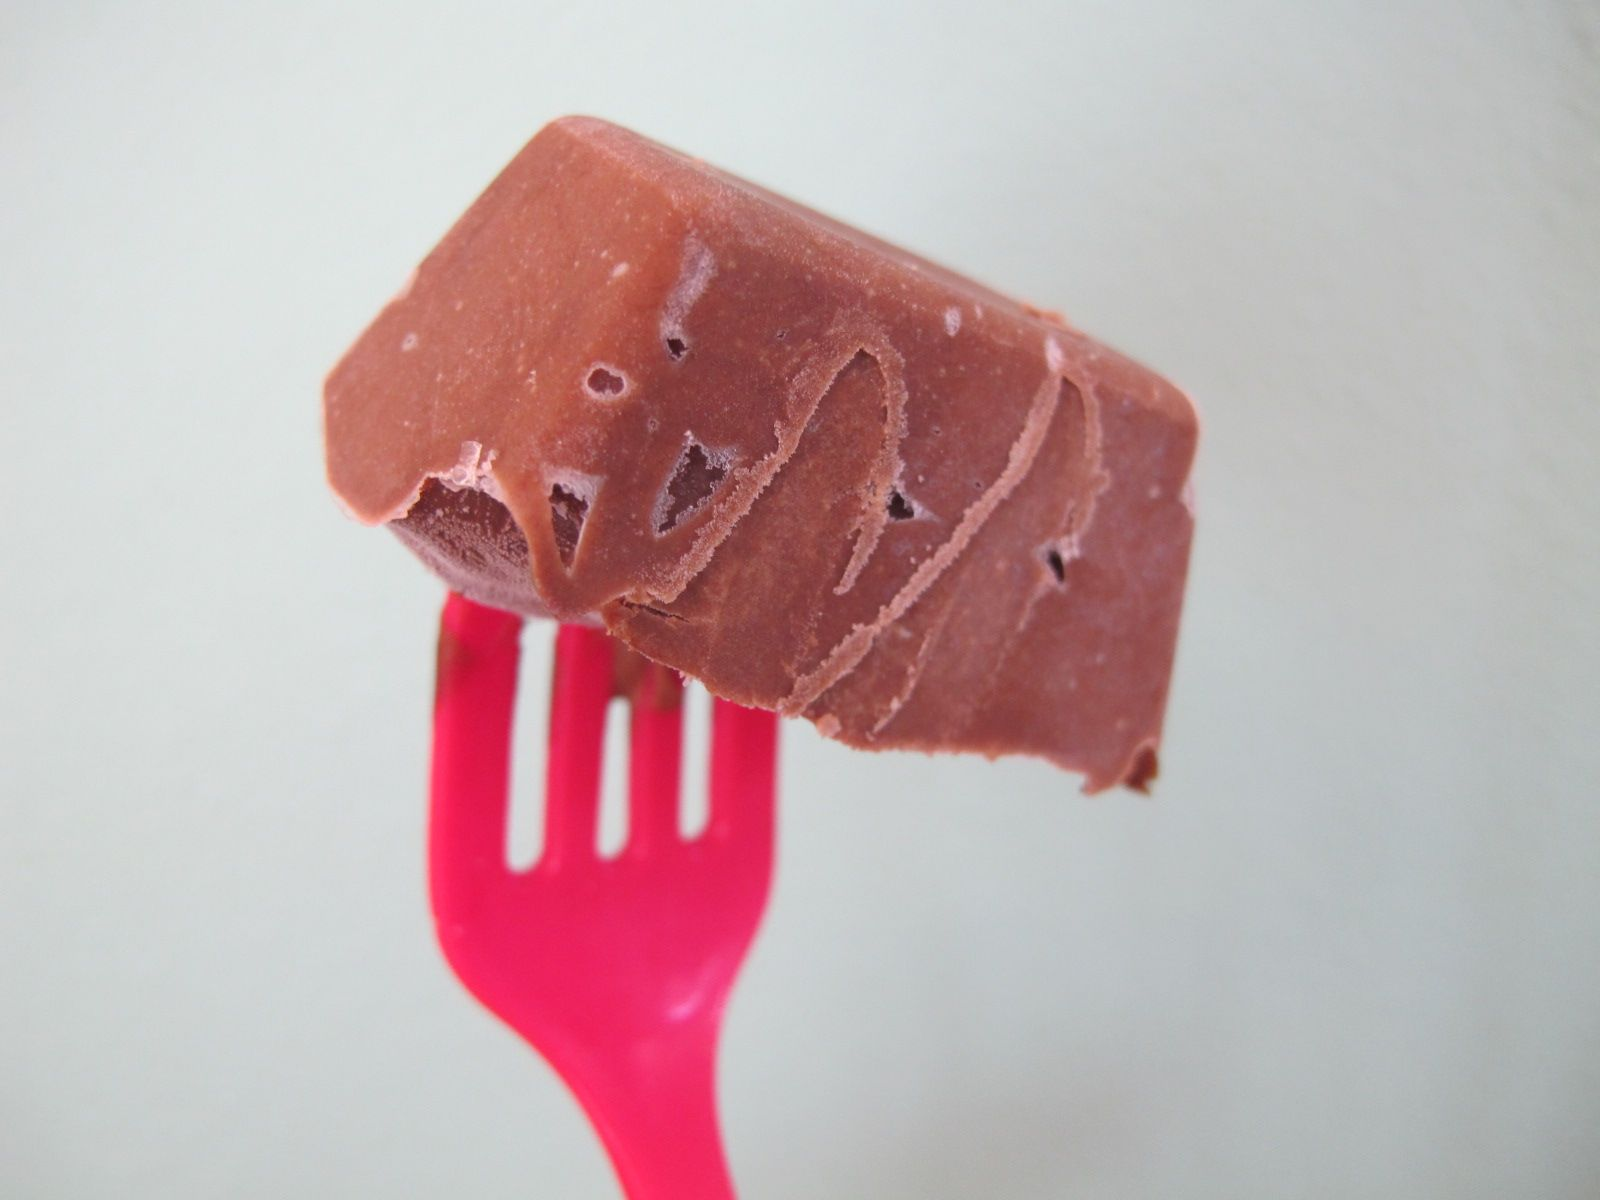 No popsicle forms, no problem... all you need is an ice tray and some toothpicks or plastic forks